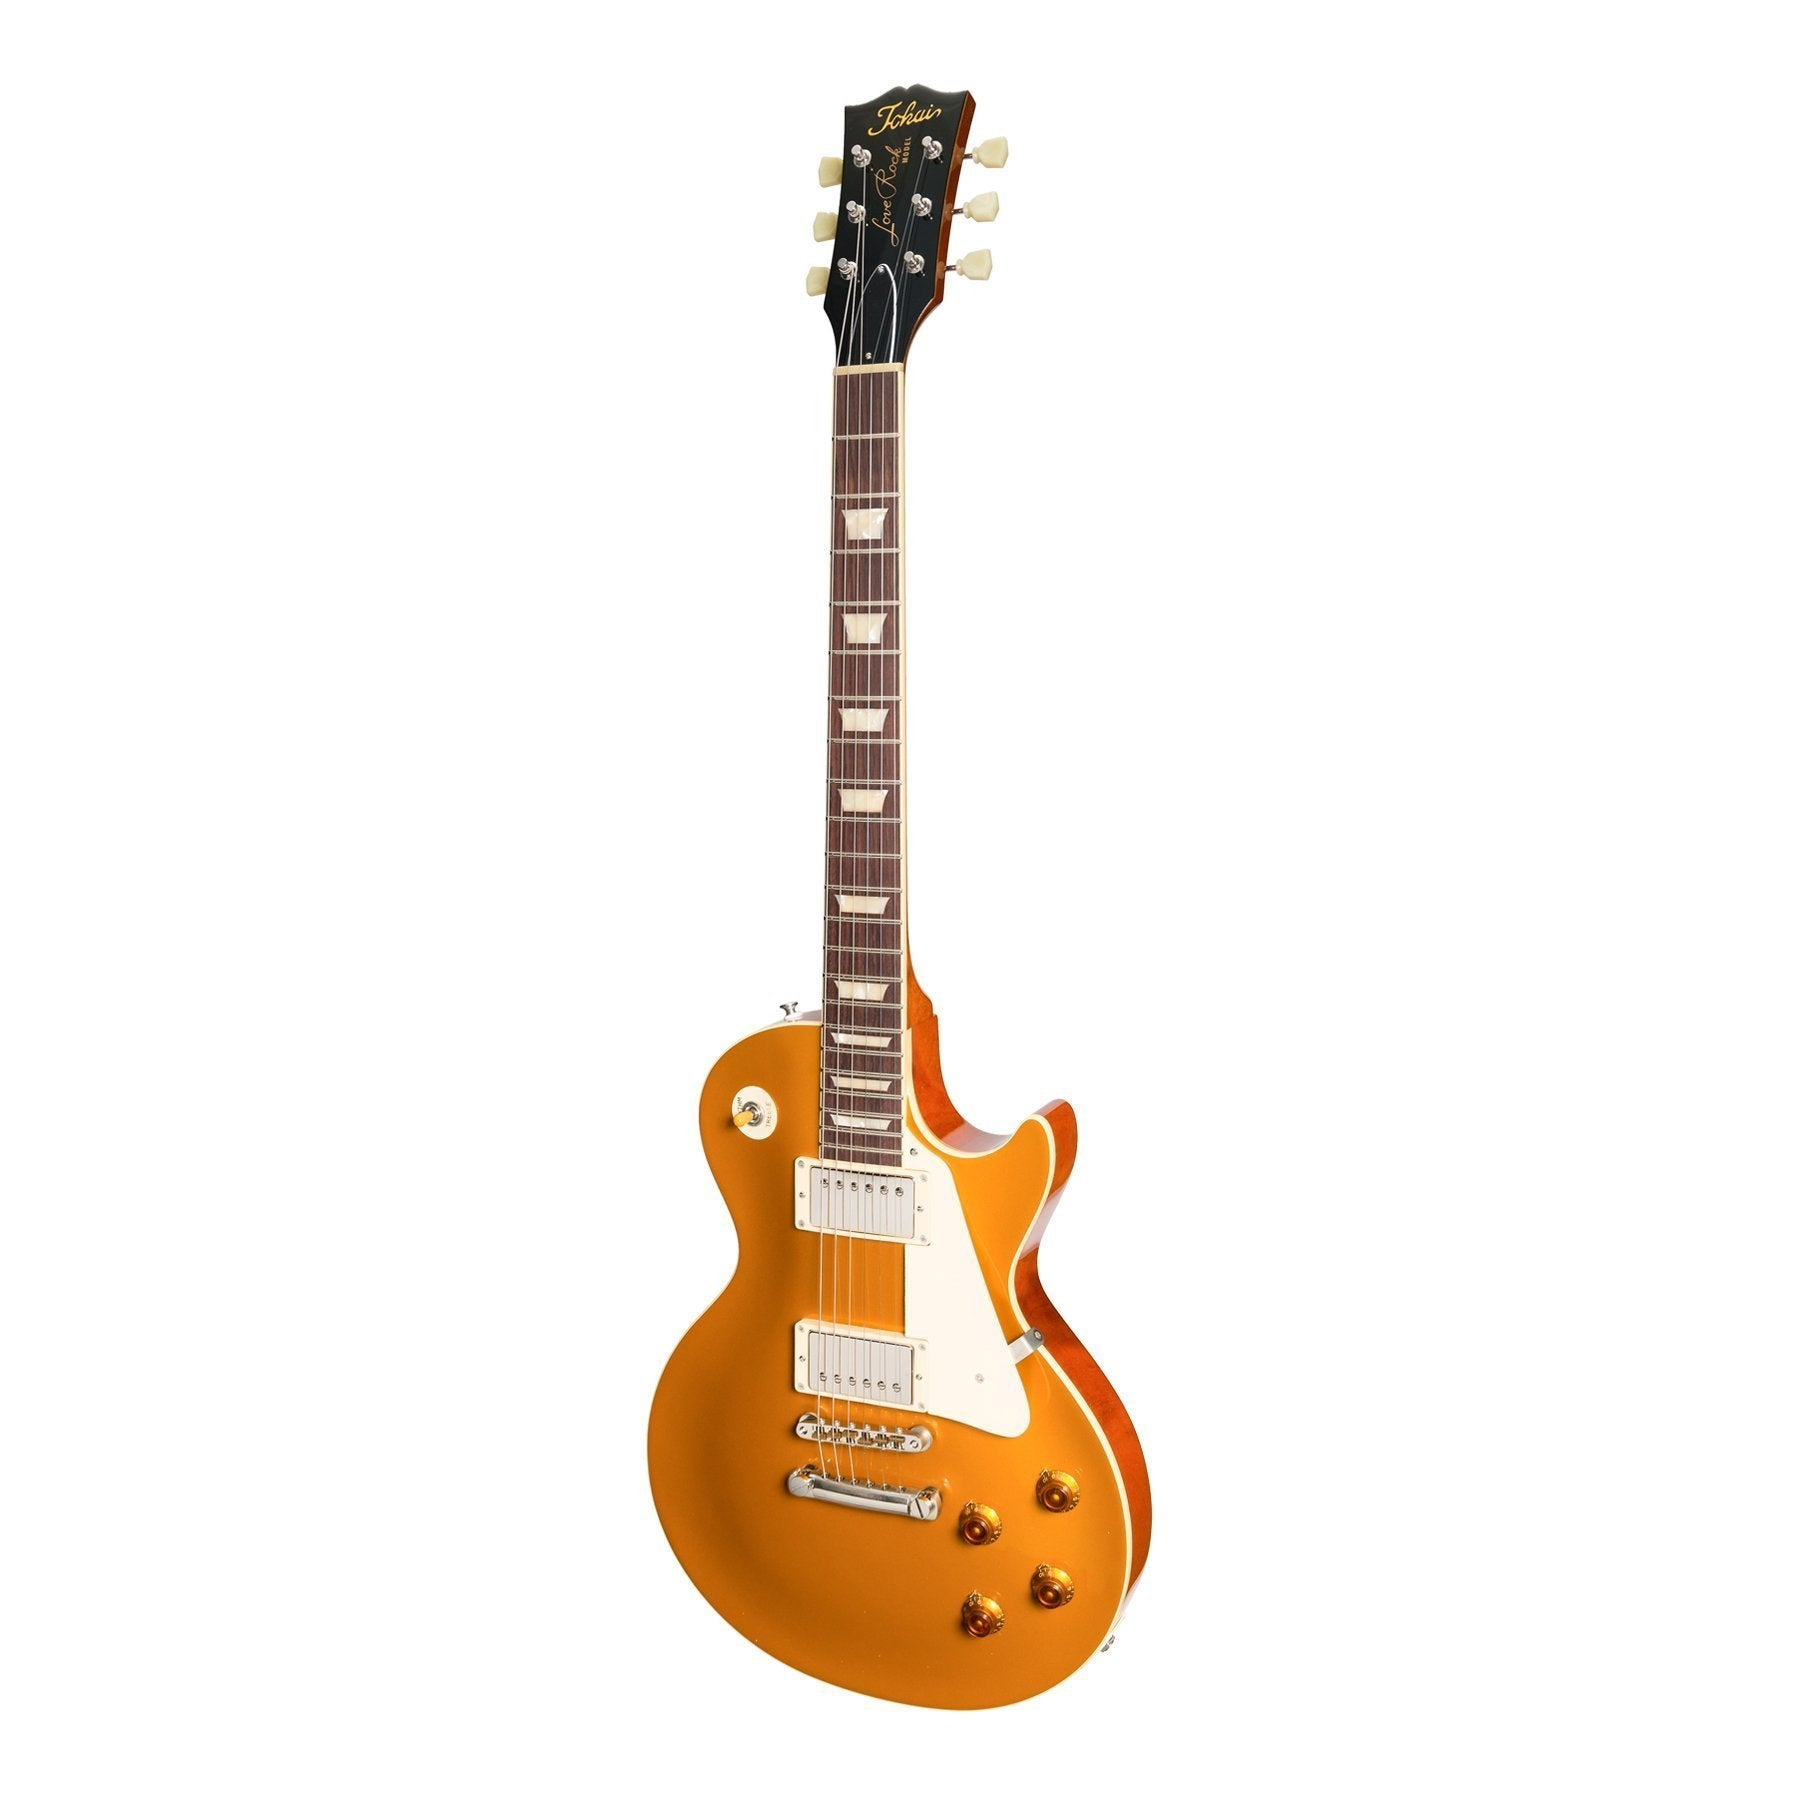 Tokai 'Premium Series' LS-196 LP-Style Electric Guitar (Gold Top)-LS-196-GT